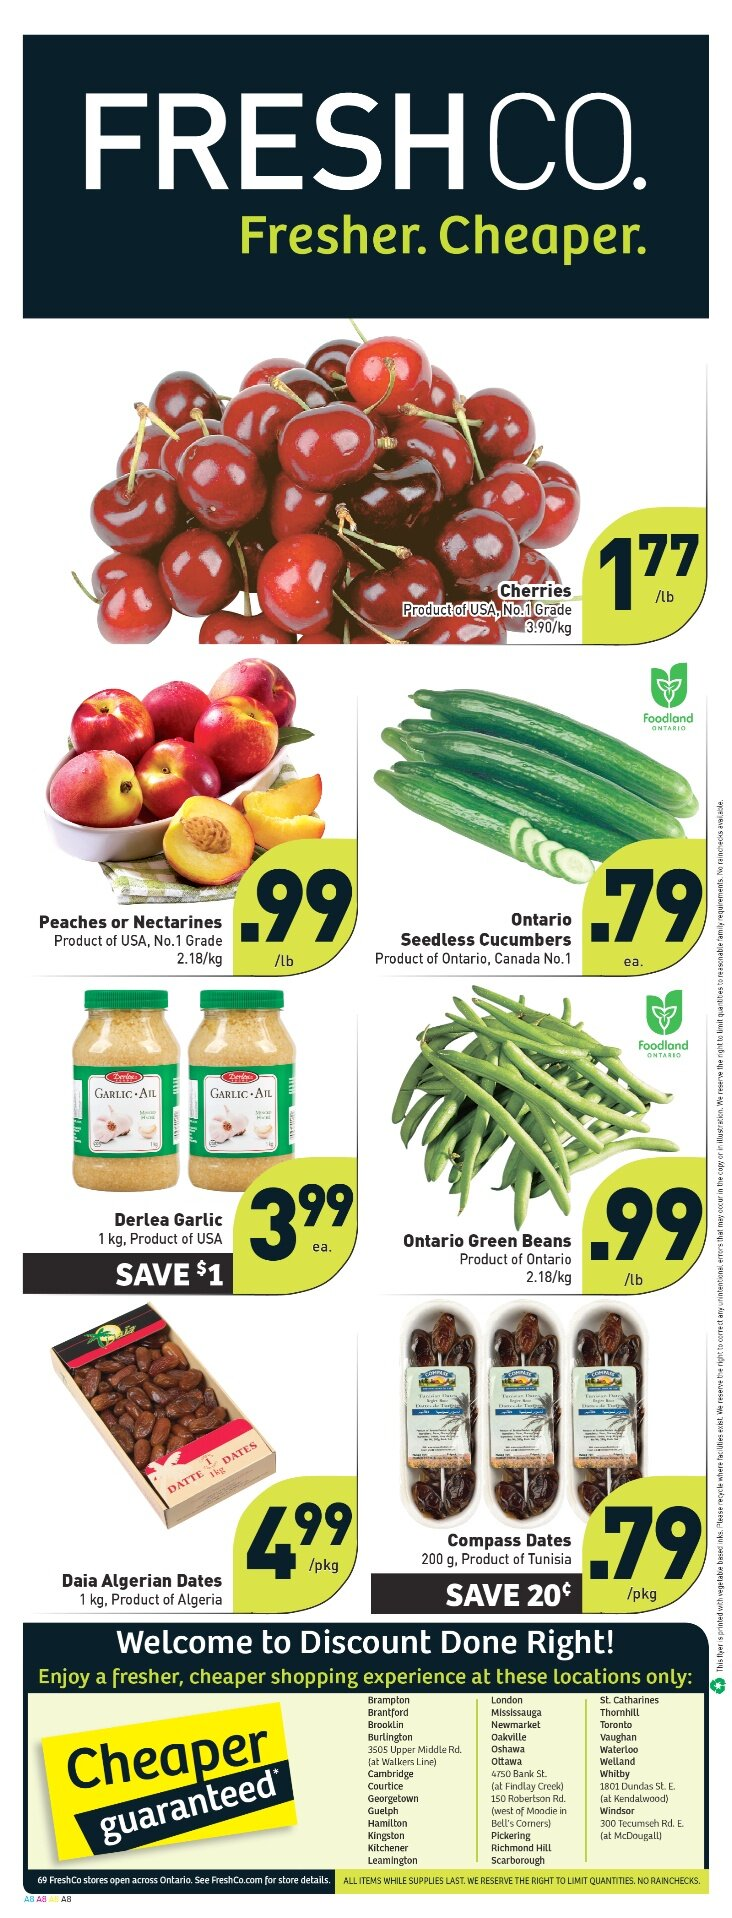 Freshco Flyer July 12-July 18 2012